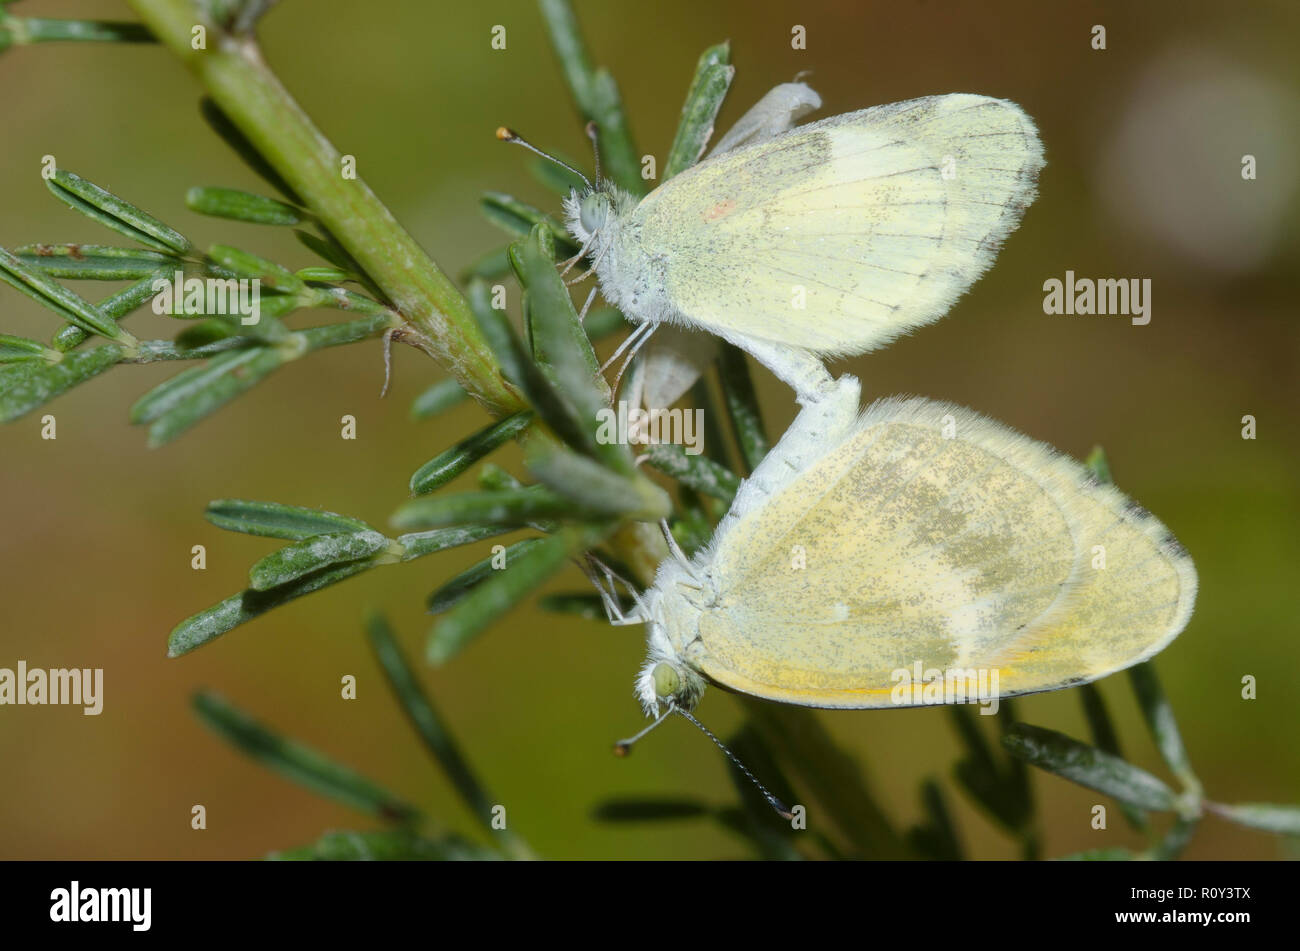 Dainty Sulphurs, Nathalis iole, mated pair with the male at the top and the female's pupal case just behind - Stock Image